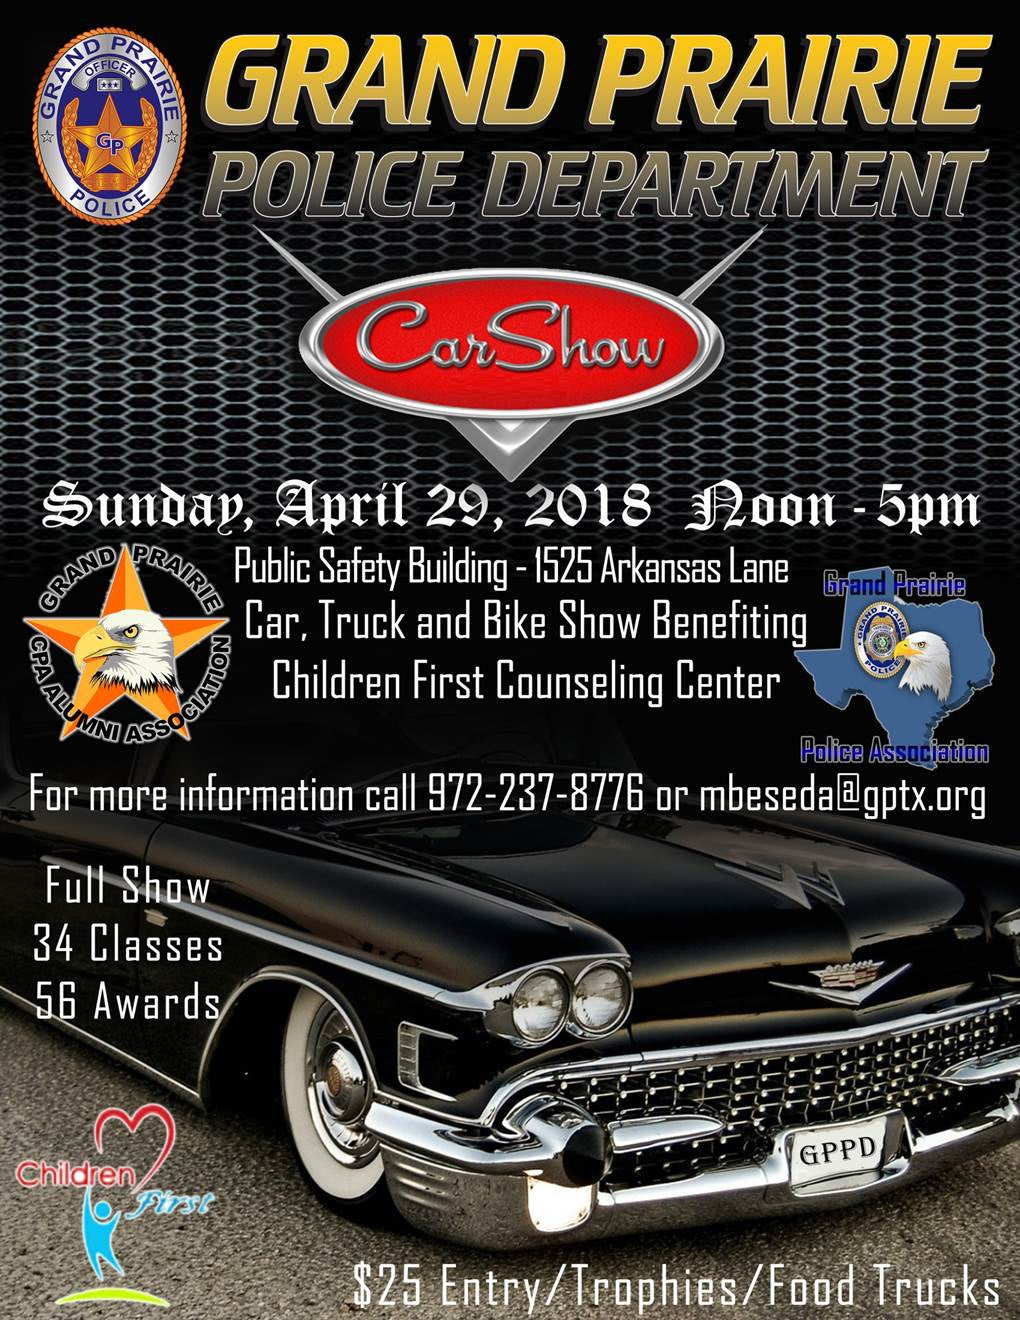 Grand Prairie Police Department Car Show